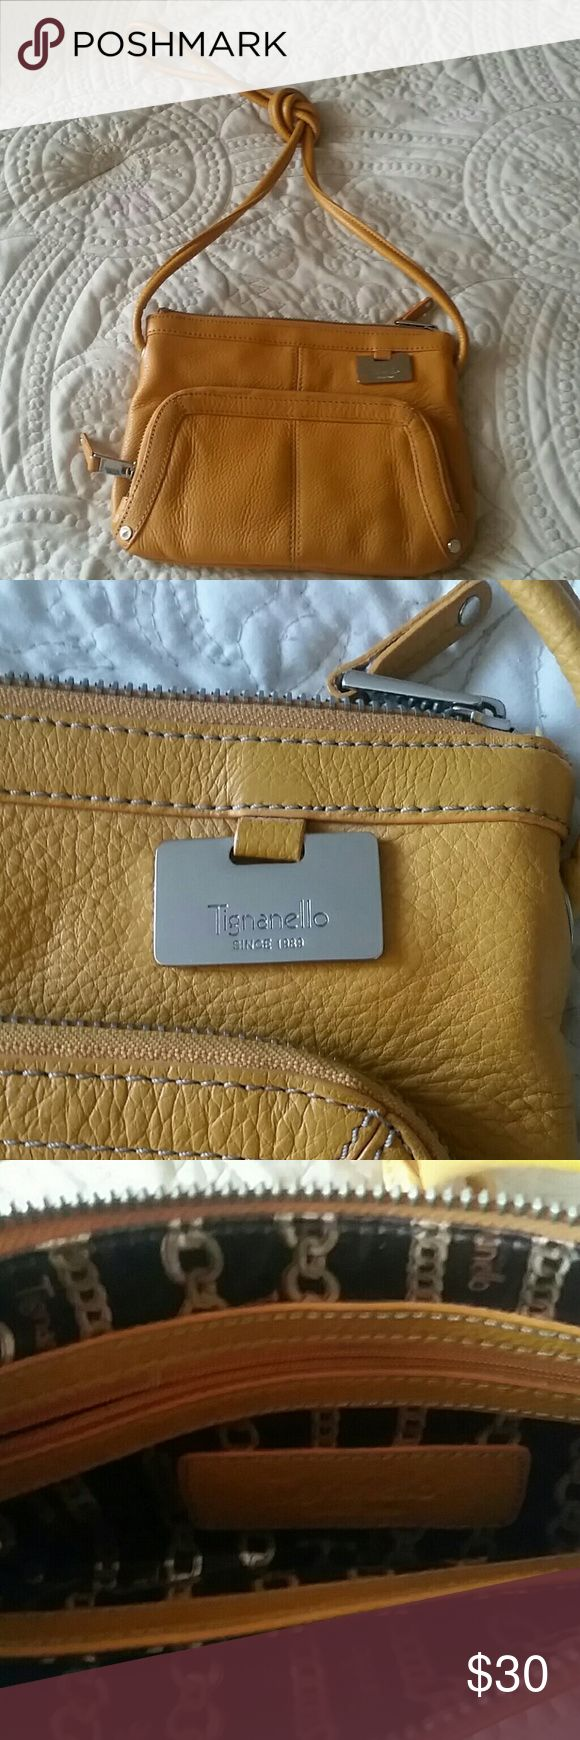 NWOT Tignanello purse Brand new. Received as a gift. Several compartments . Measures 6 1/2 deep and 9 wide Tignanello Bags